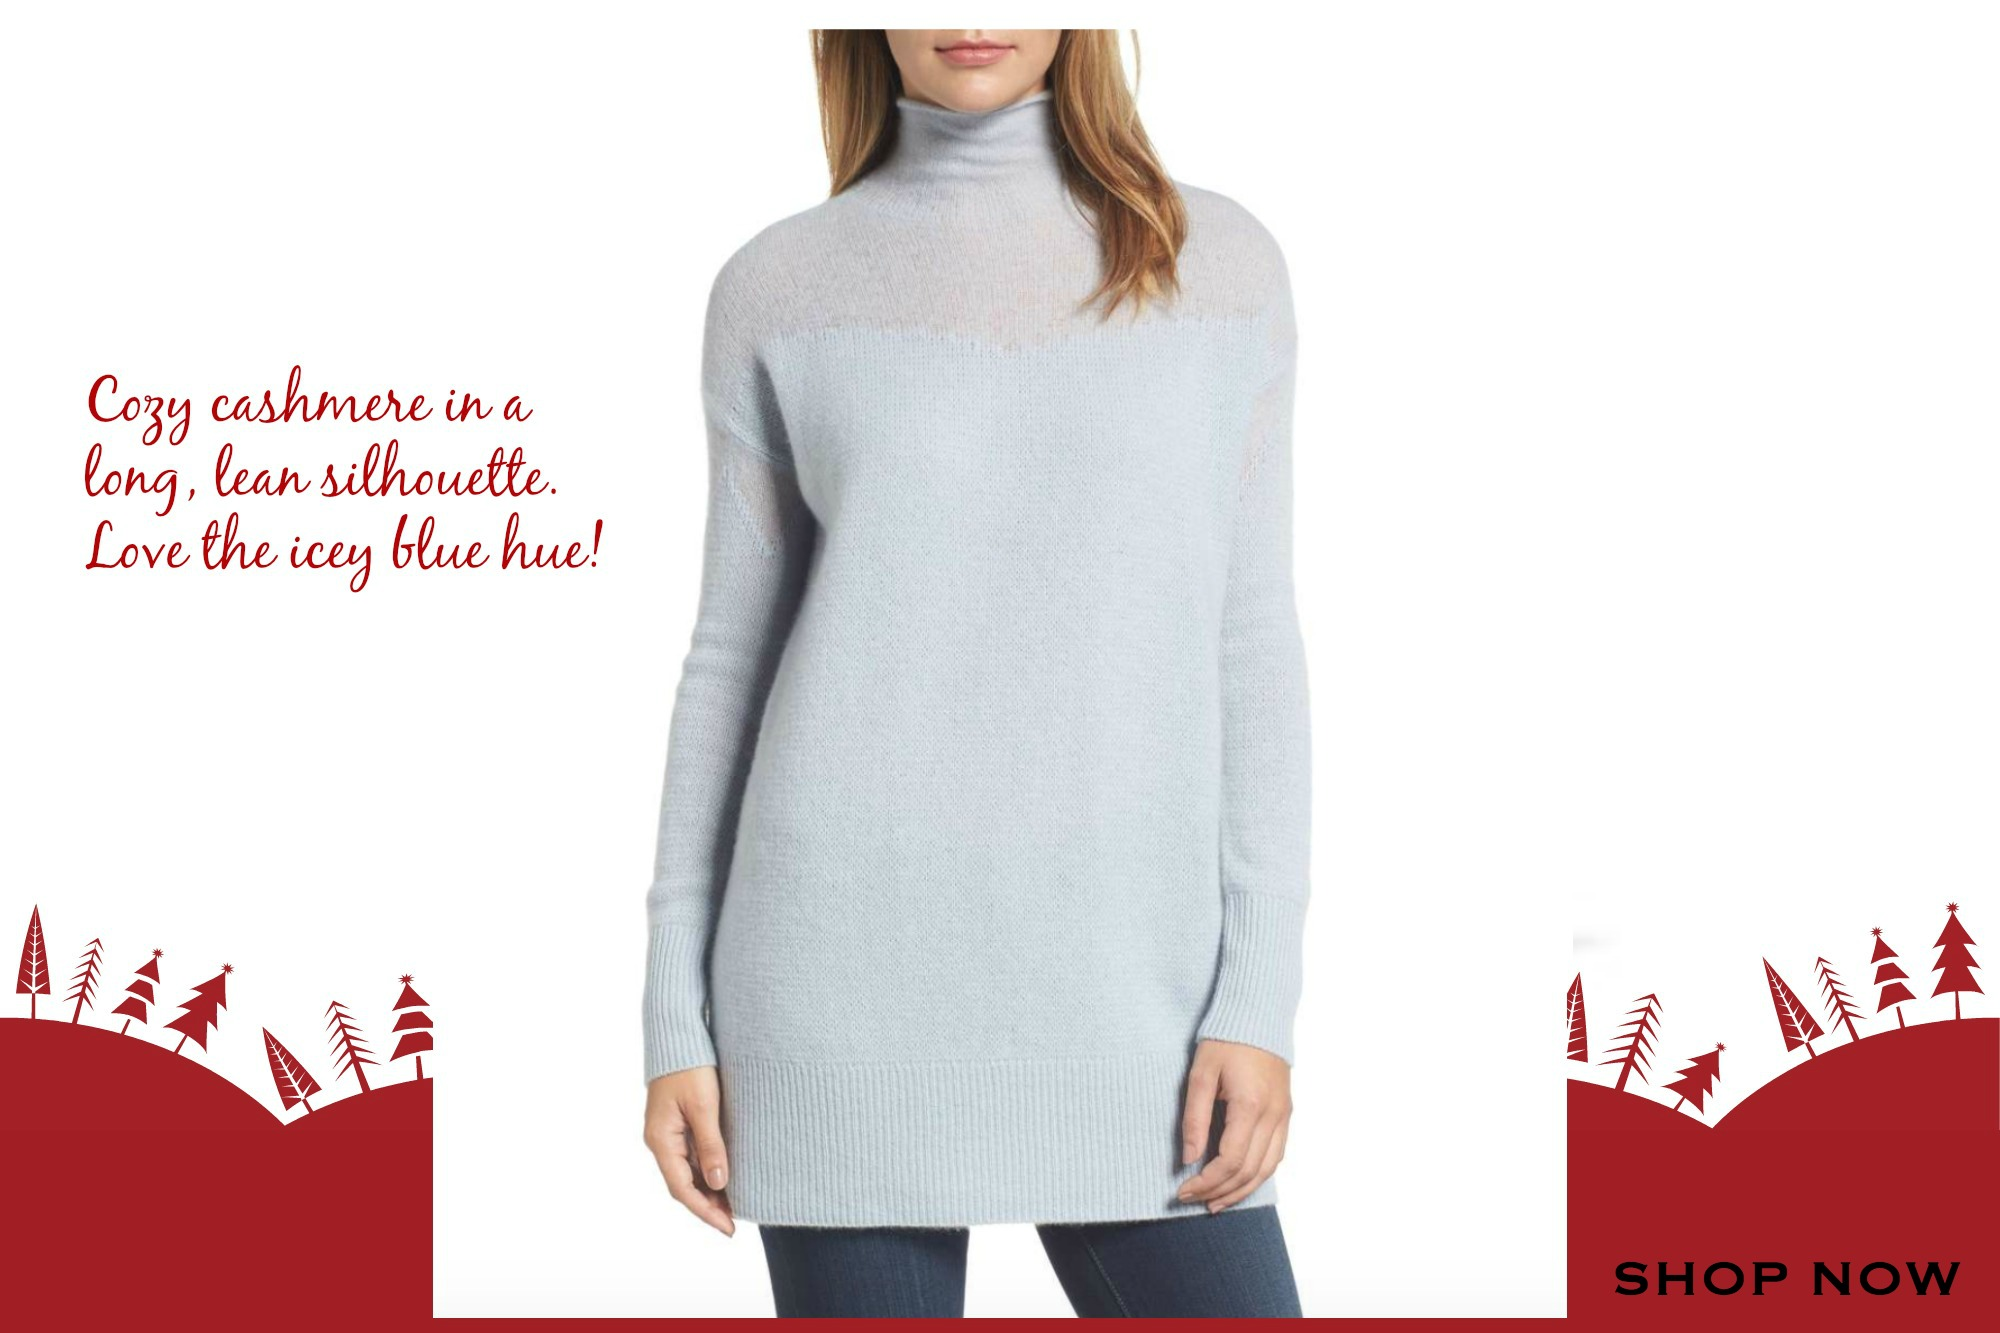 Cozy Cashmere Makes The Perfect Holiday Gift | Mary Murnane